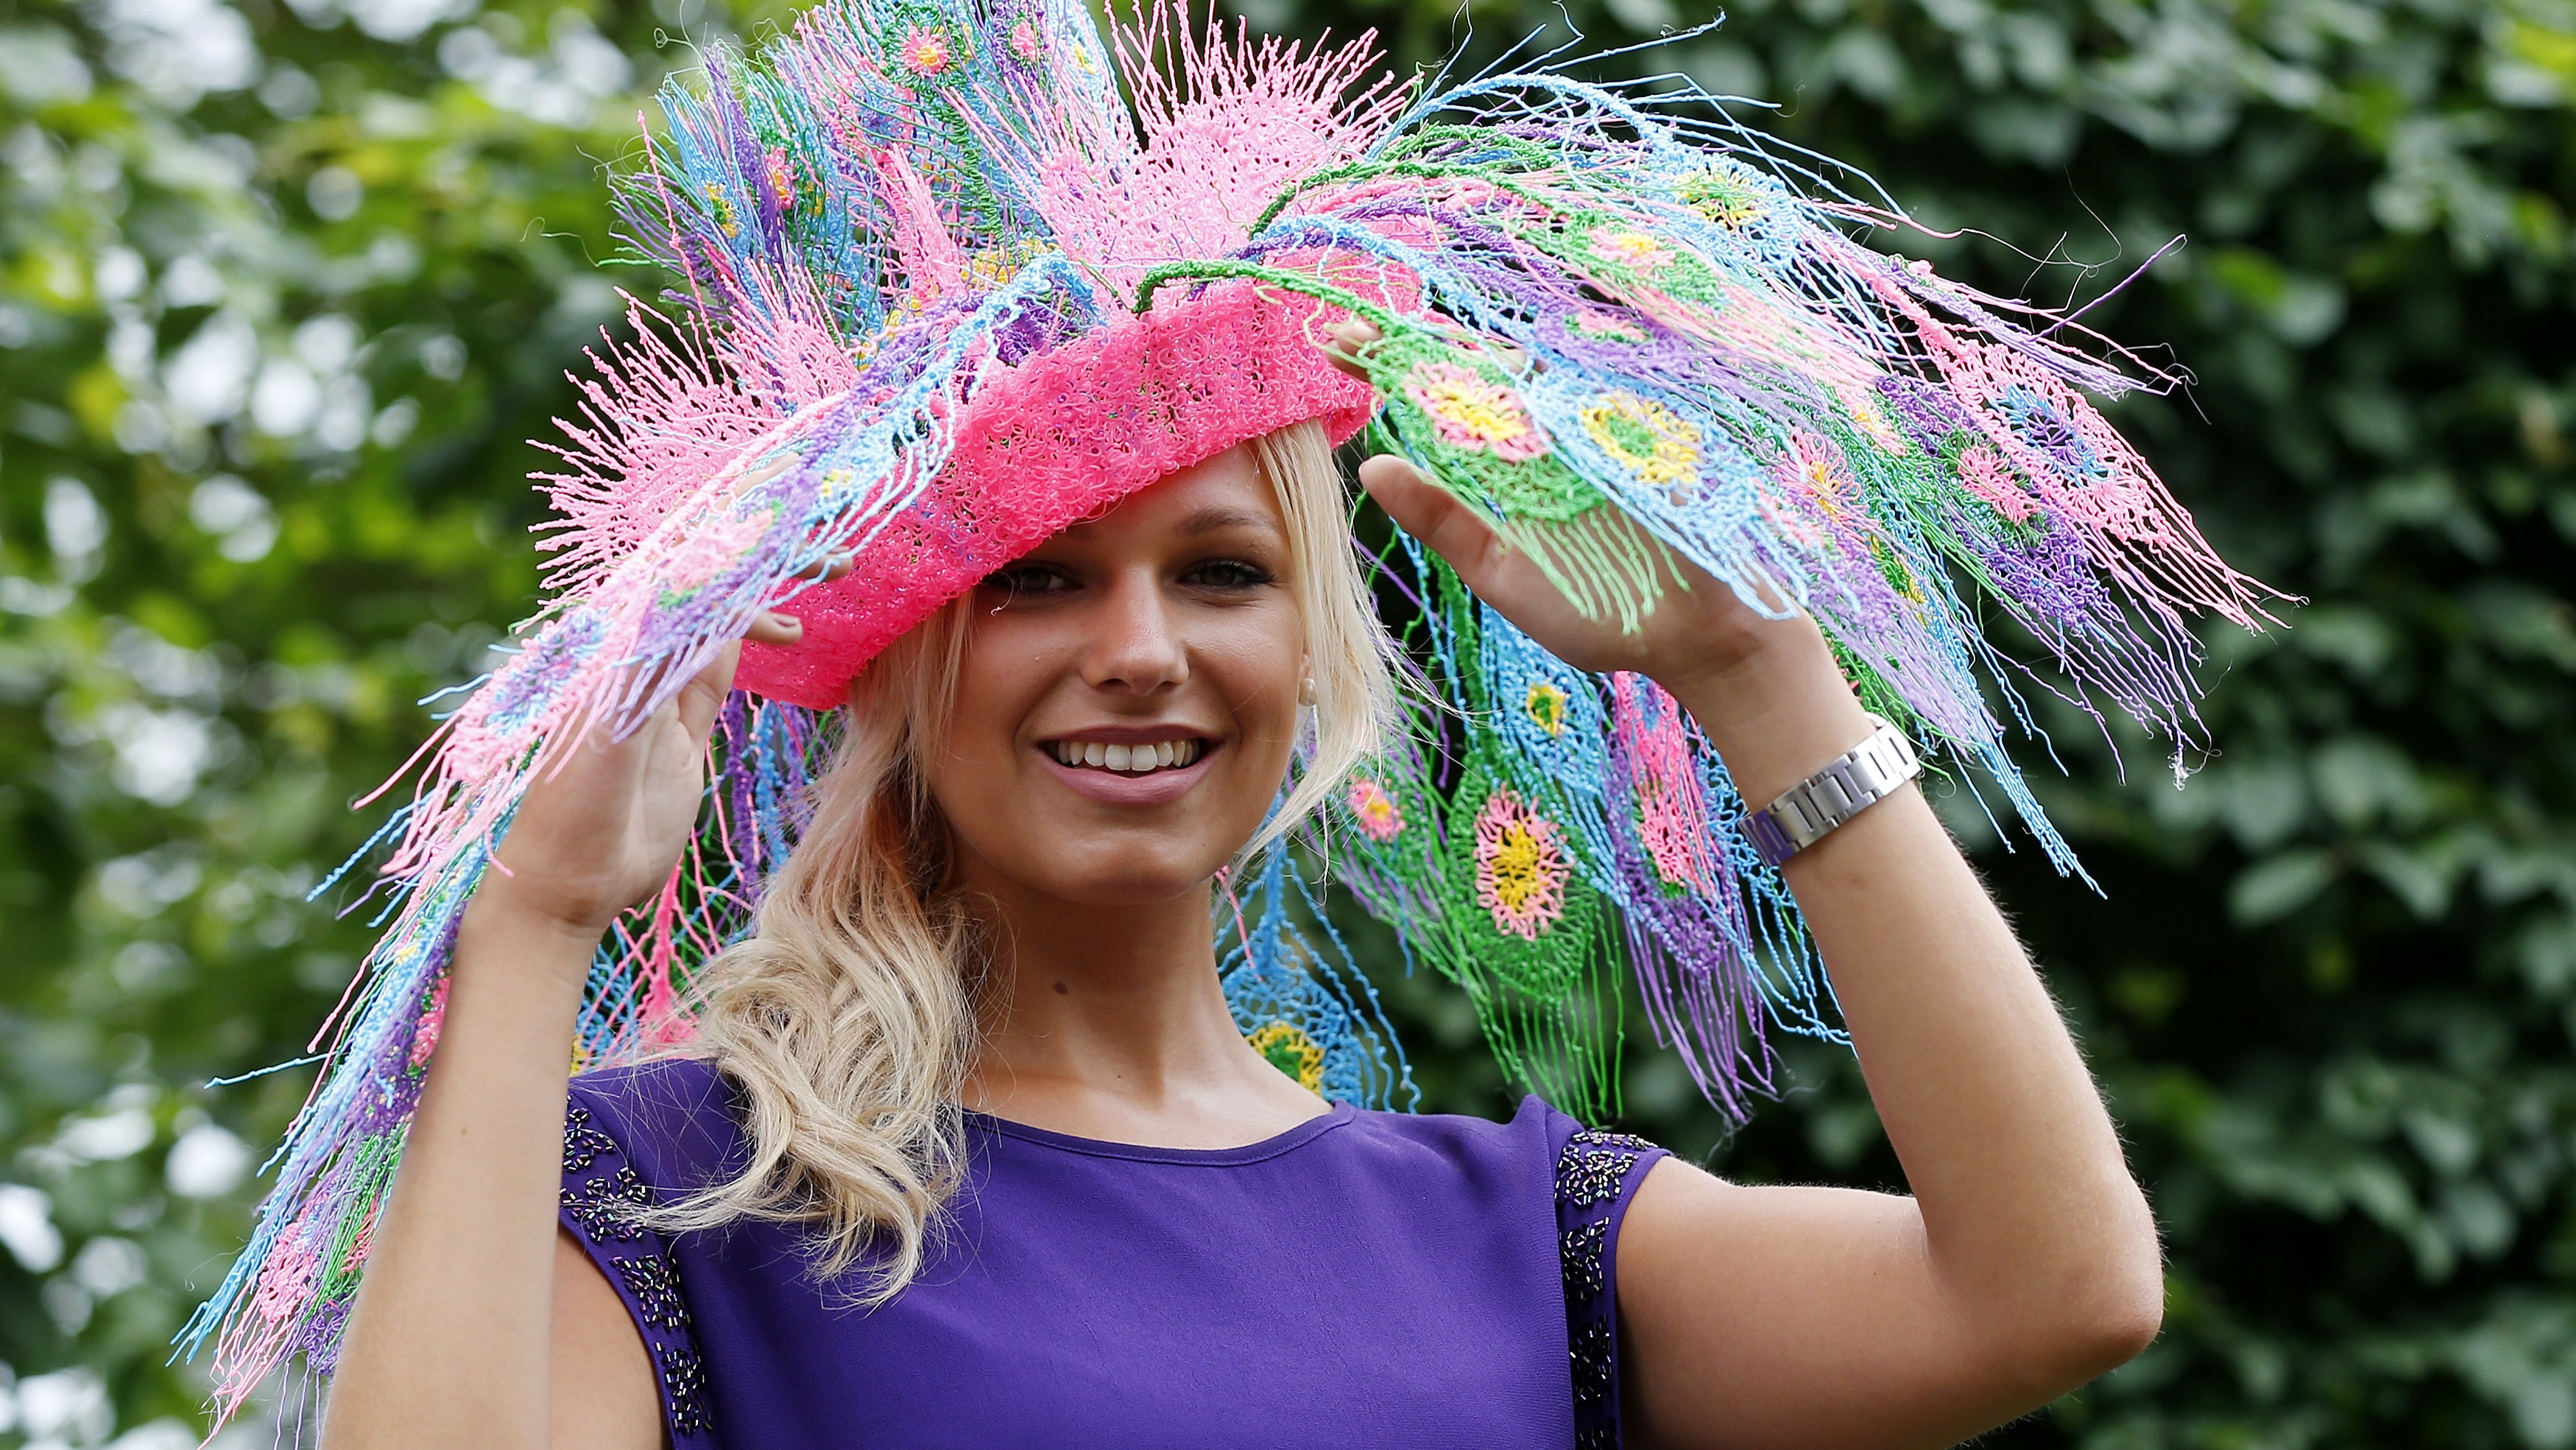 Courtney Wallis poses in a hat made with a 3D printer pen for the third day of the Royal Ascot horse racing festival at Ascot, southern England June 19, 2014. REUTERS/Suzanne Plunkett